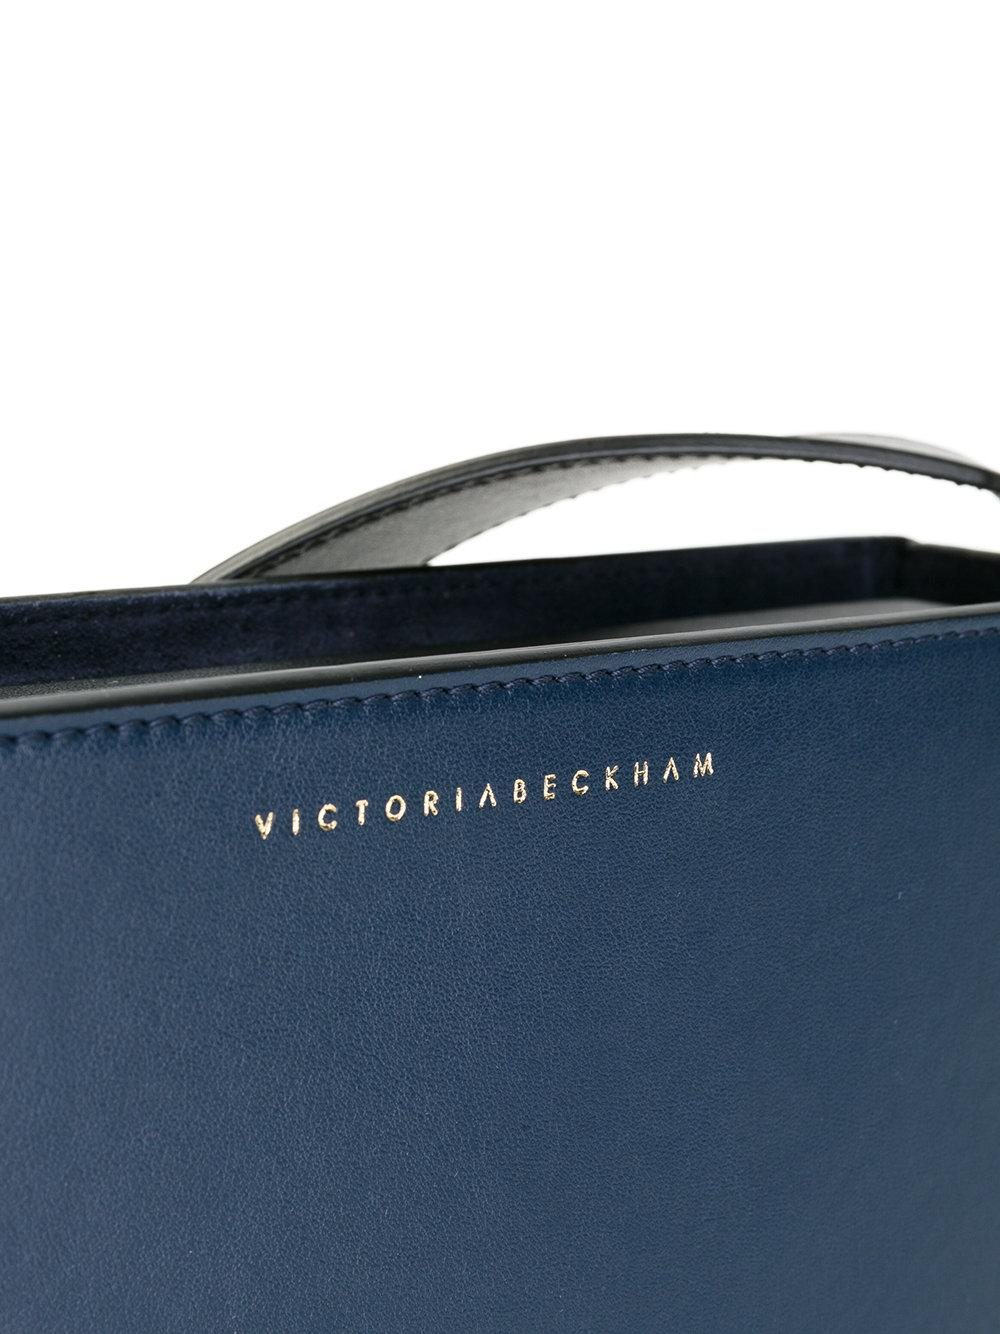 Lyst Victoria Beckham Baby Half Moon Shoulder Bag In Blue